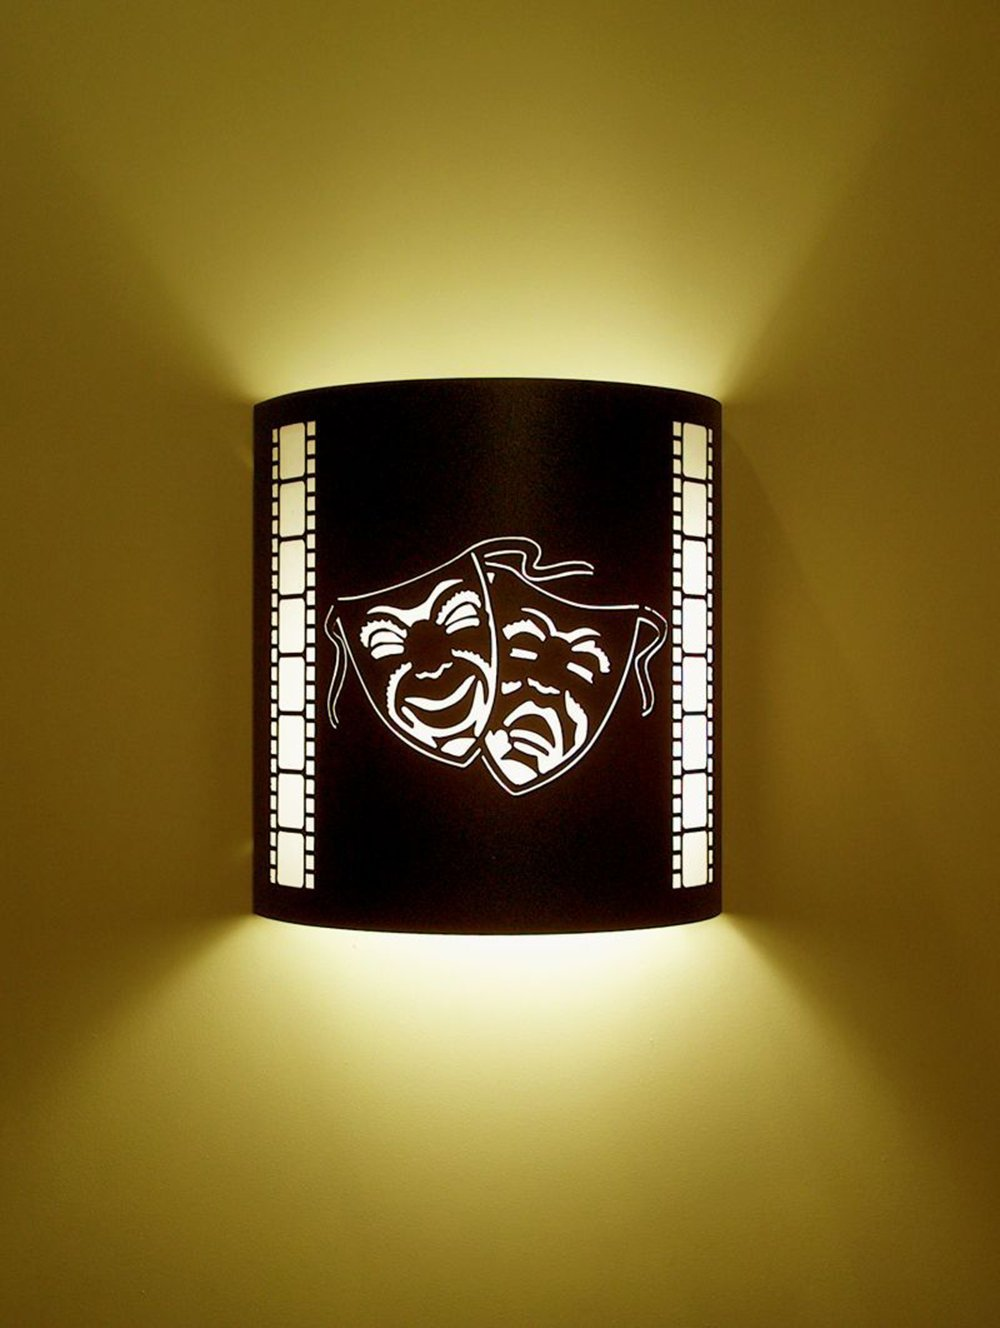 Comedy and Tragedy - Black Home Movie Theater Sconces w/ Filmstrips